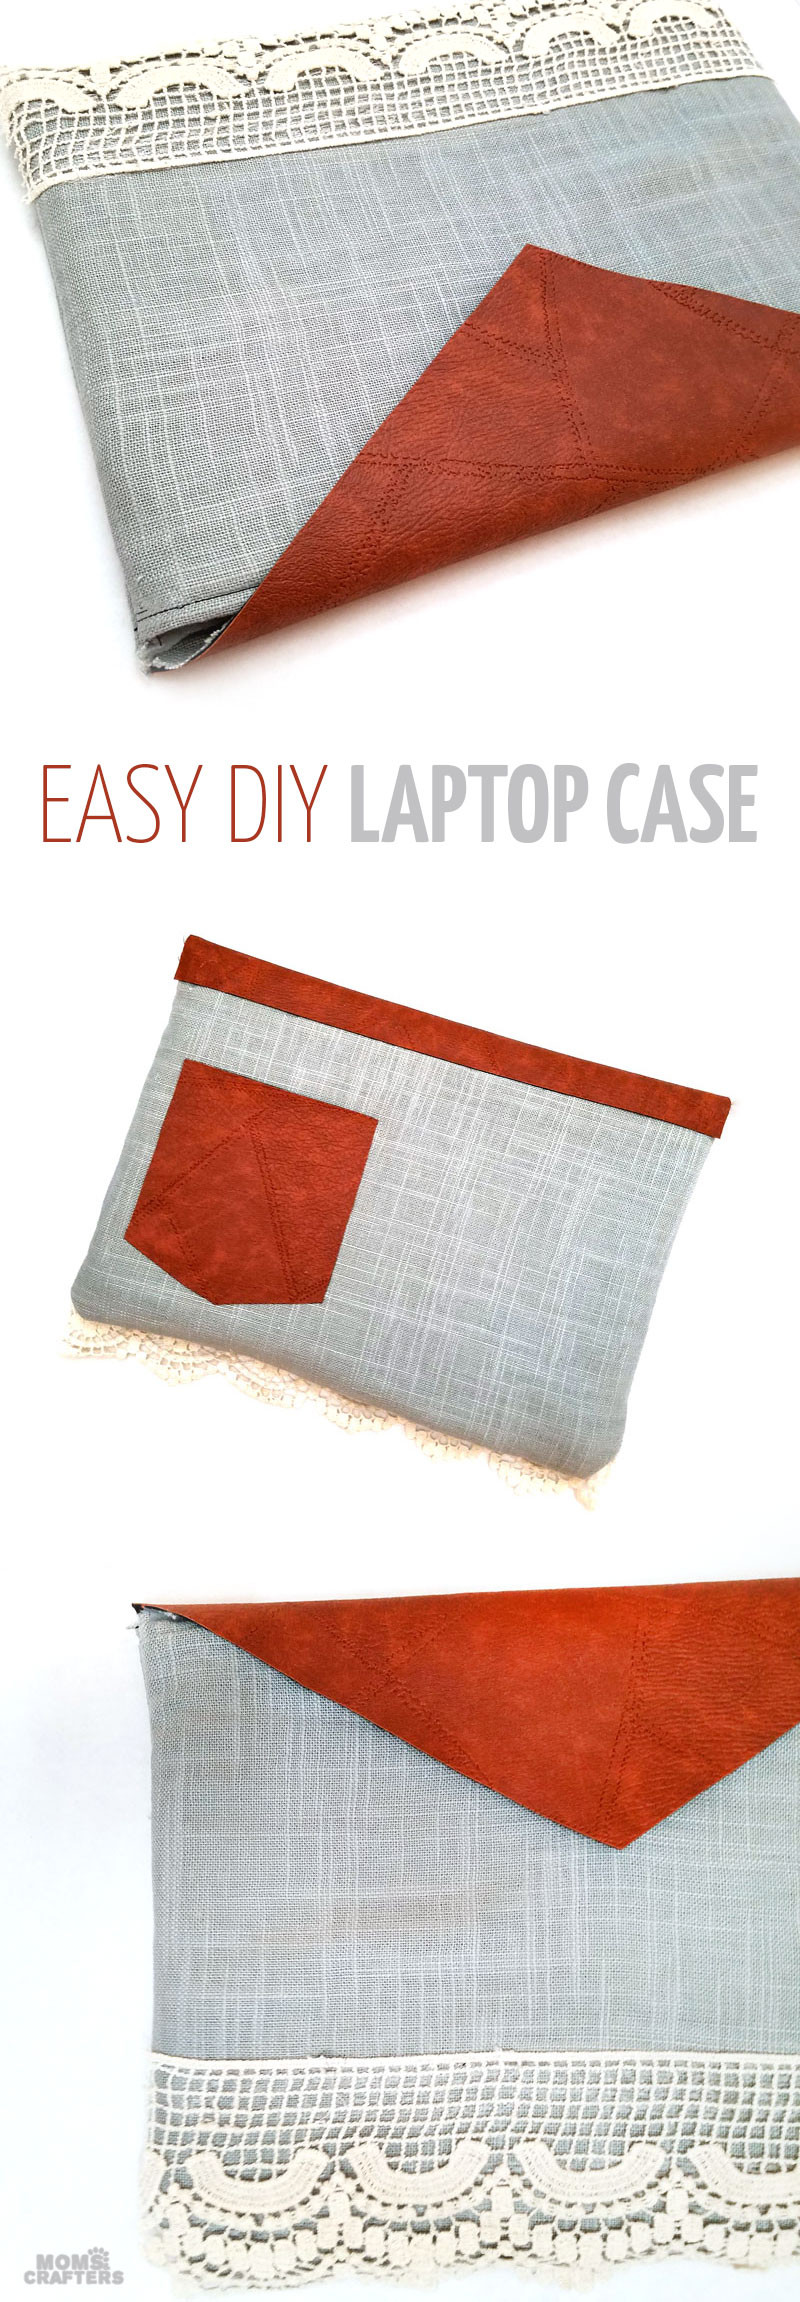 Best ideas about DIY Laptop Sleeve . Save or Pin DIY Laptop Sleeve to fit any size laptop puter Now.